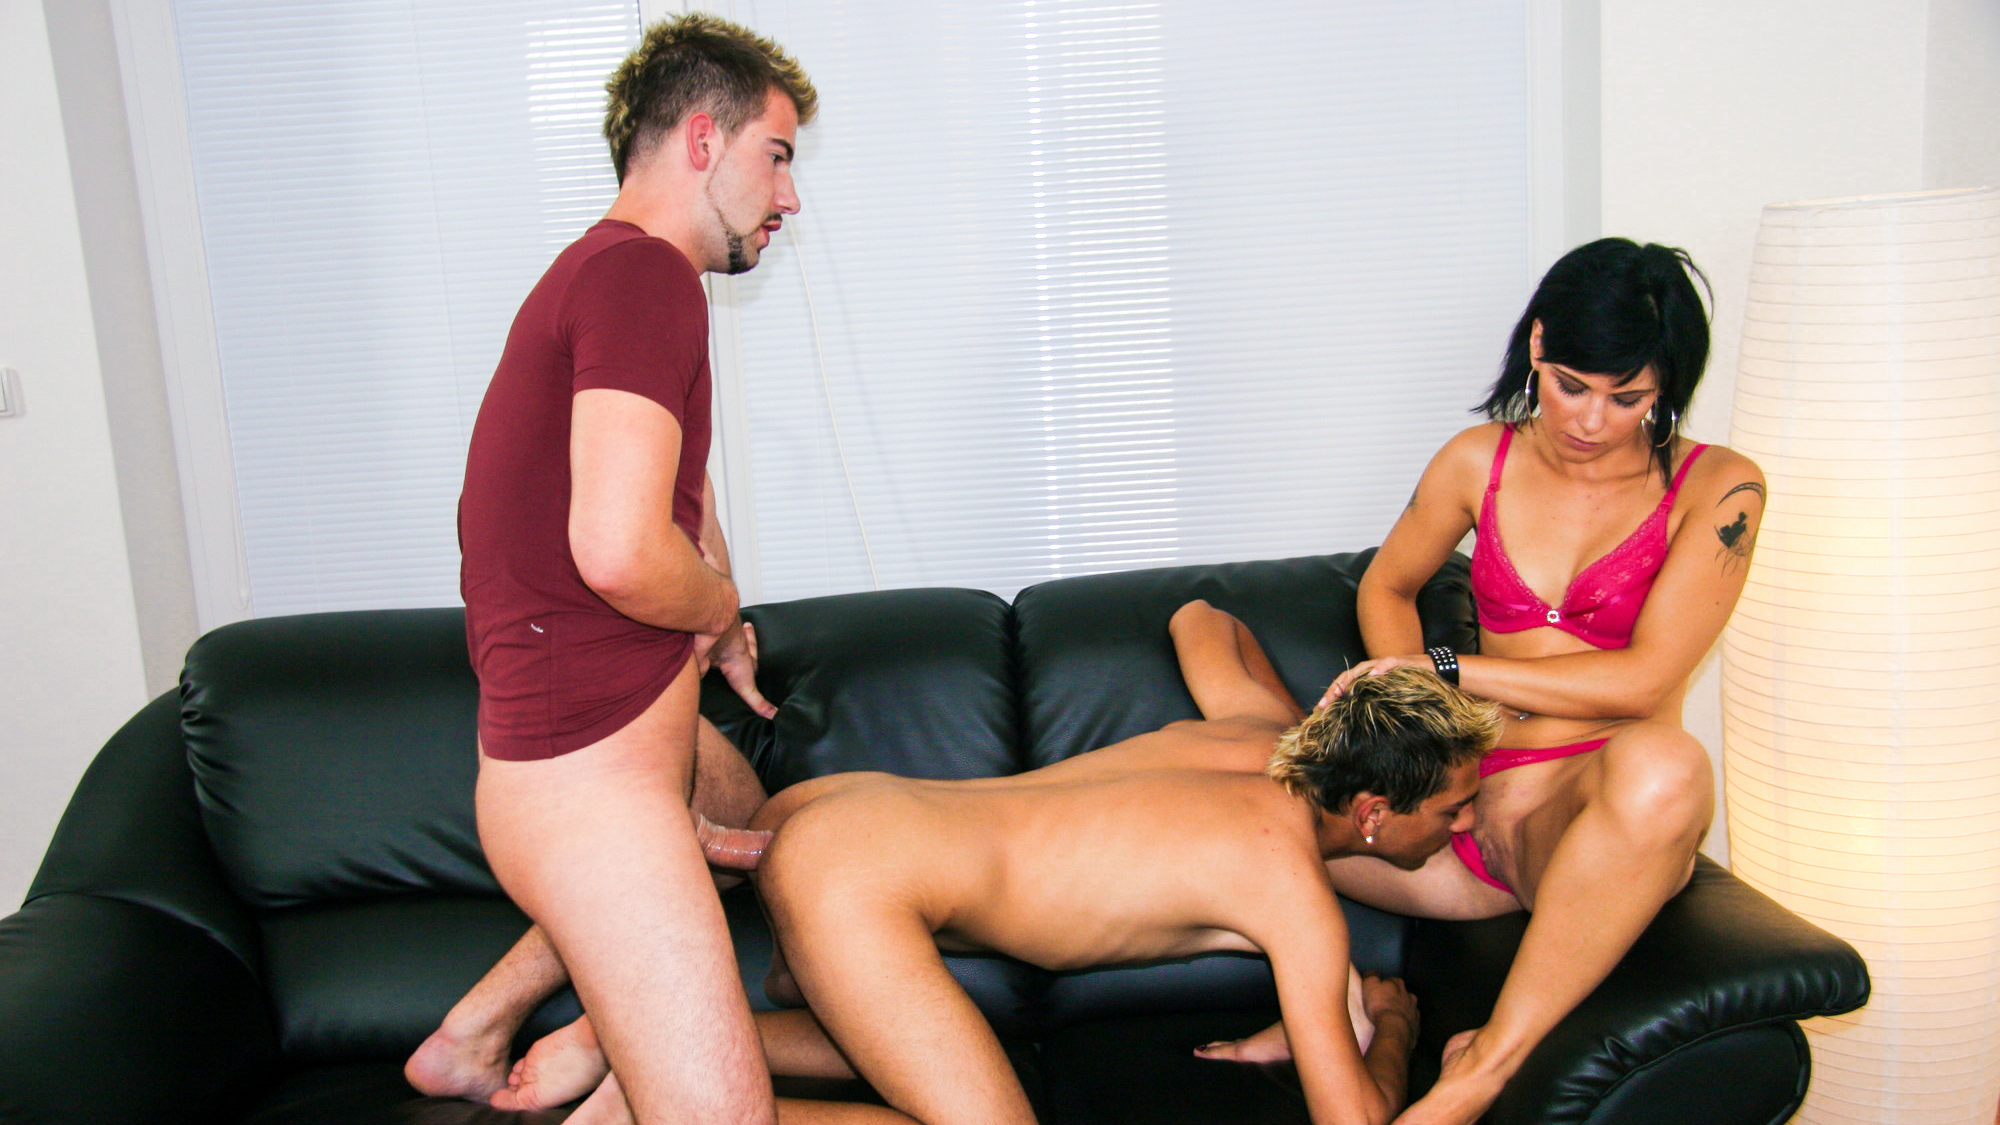 three horny hotties whip out the cocks and expose their pussies. there's MMF blowjobs, eating out, anal fucking and pussy ramming fucking action. ending with a tits cumshot and a hot open mouth facial